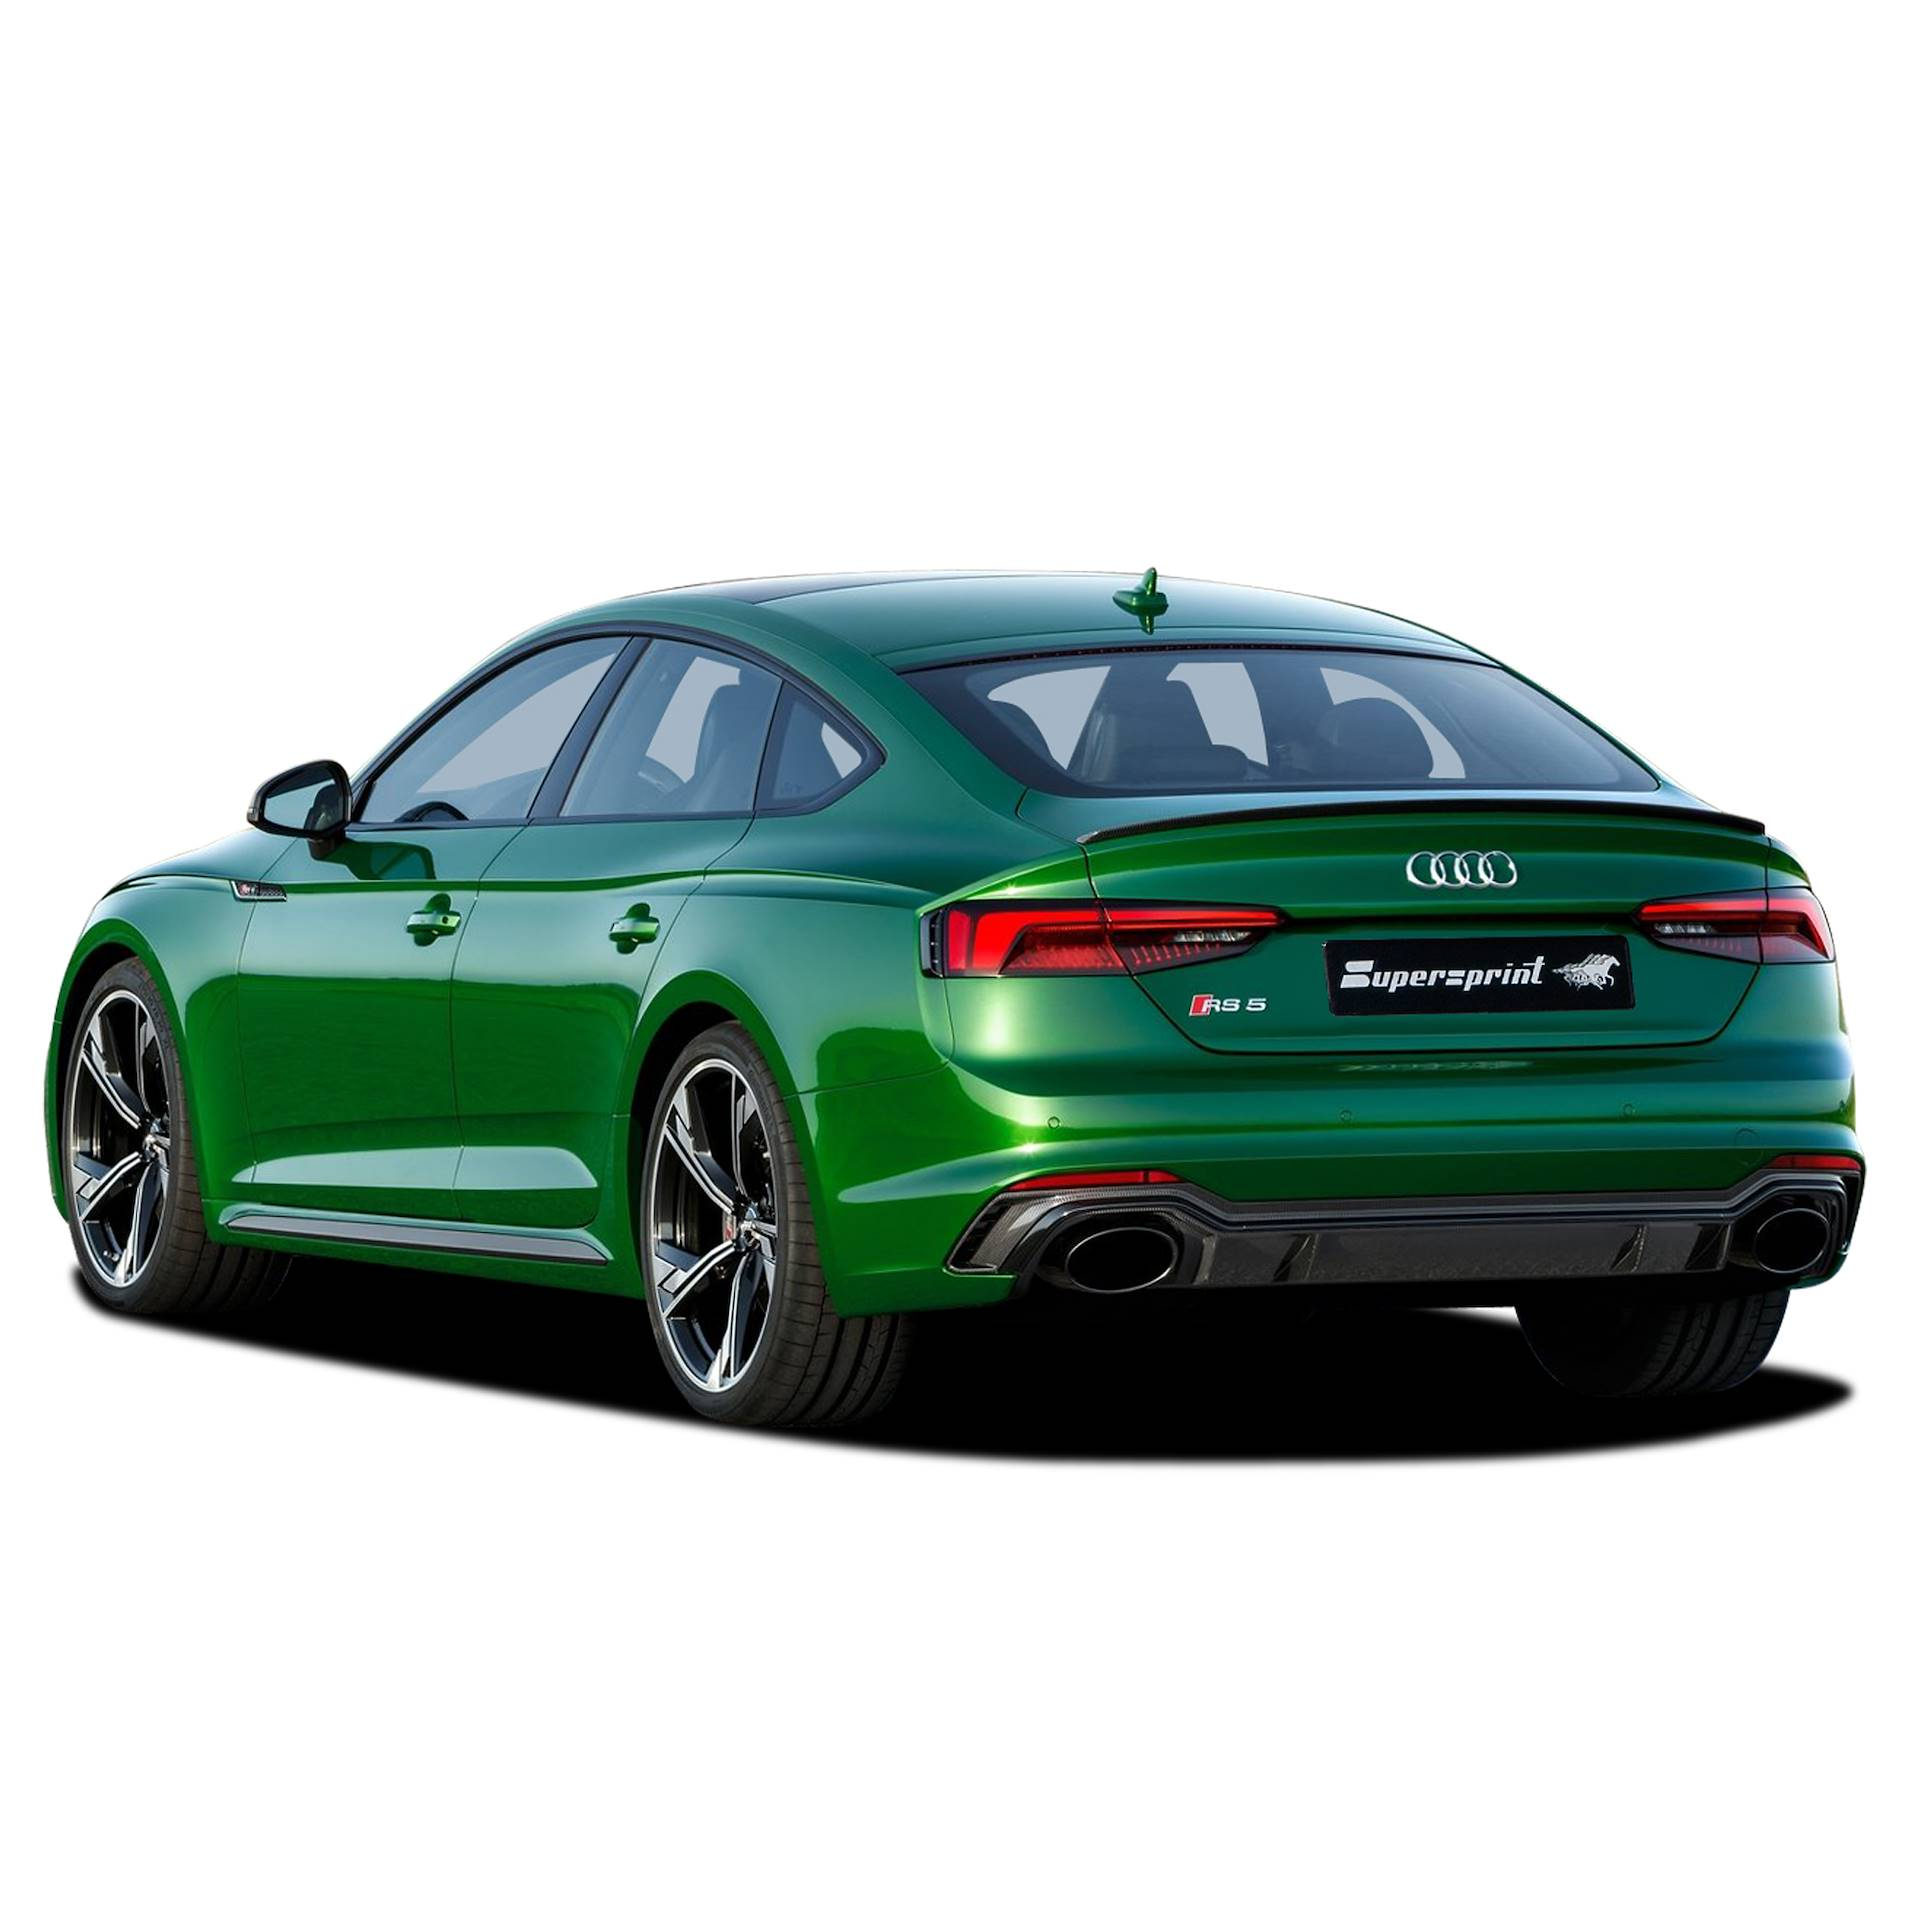 AUDI RS5 Quattro Sportback 2.9 TFSi V6 (450 Hp) -> 09/2017 (with valve)